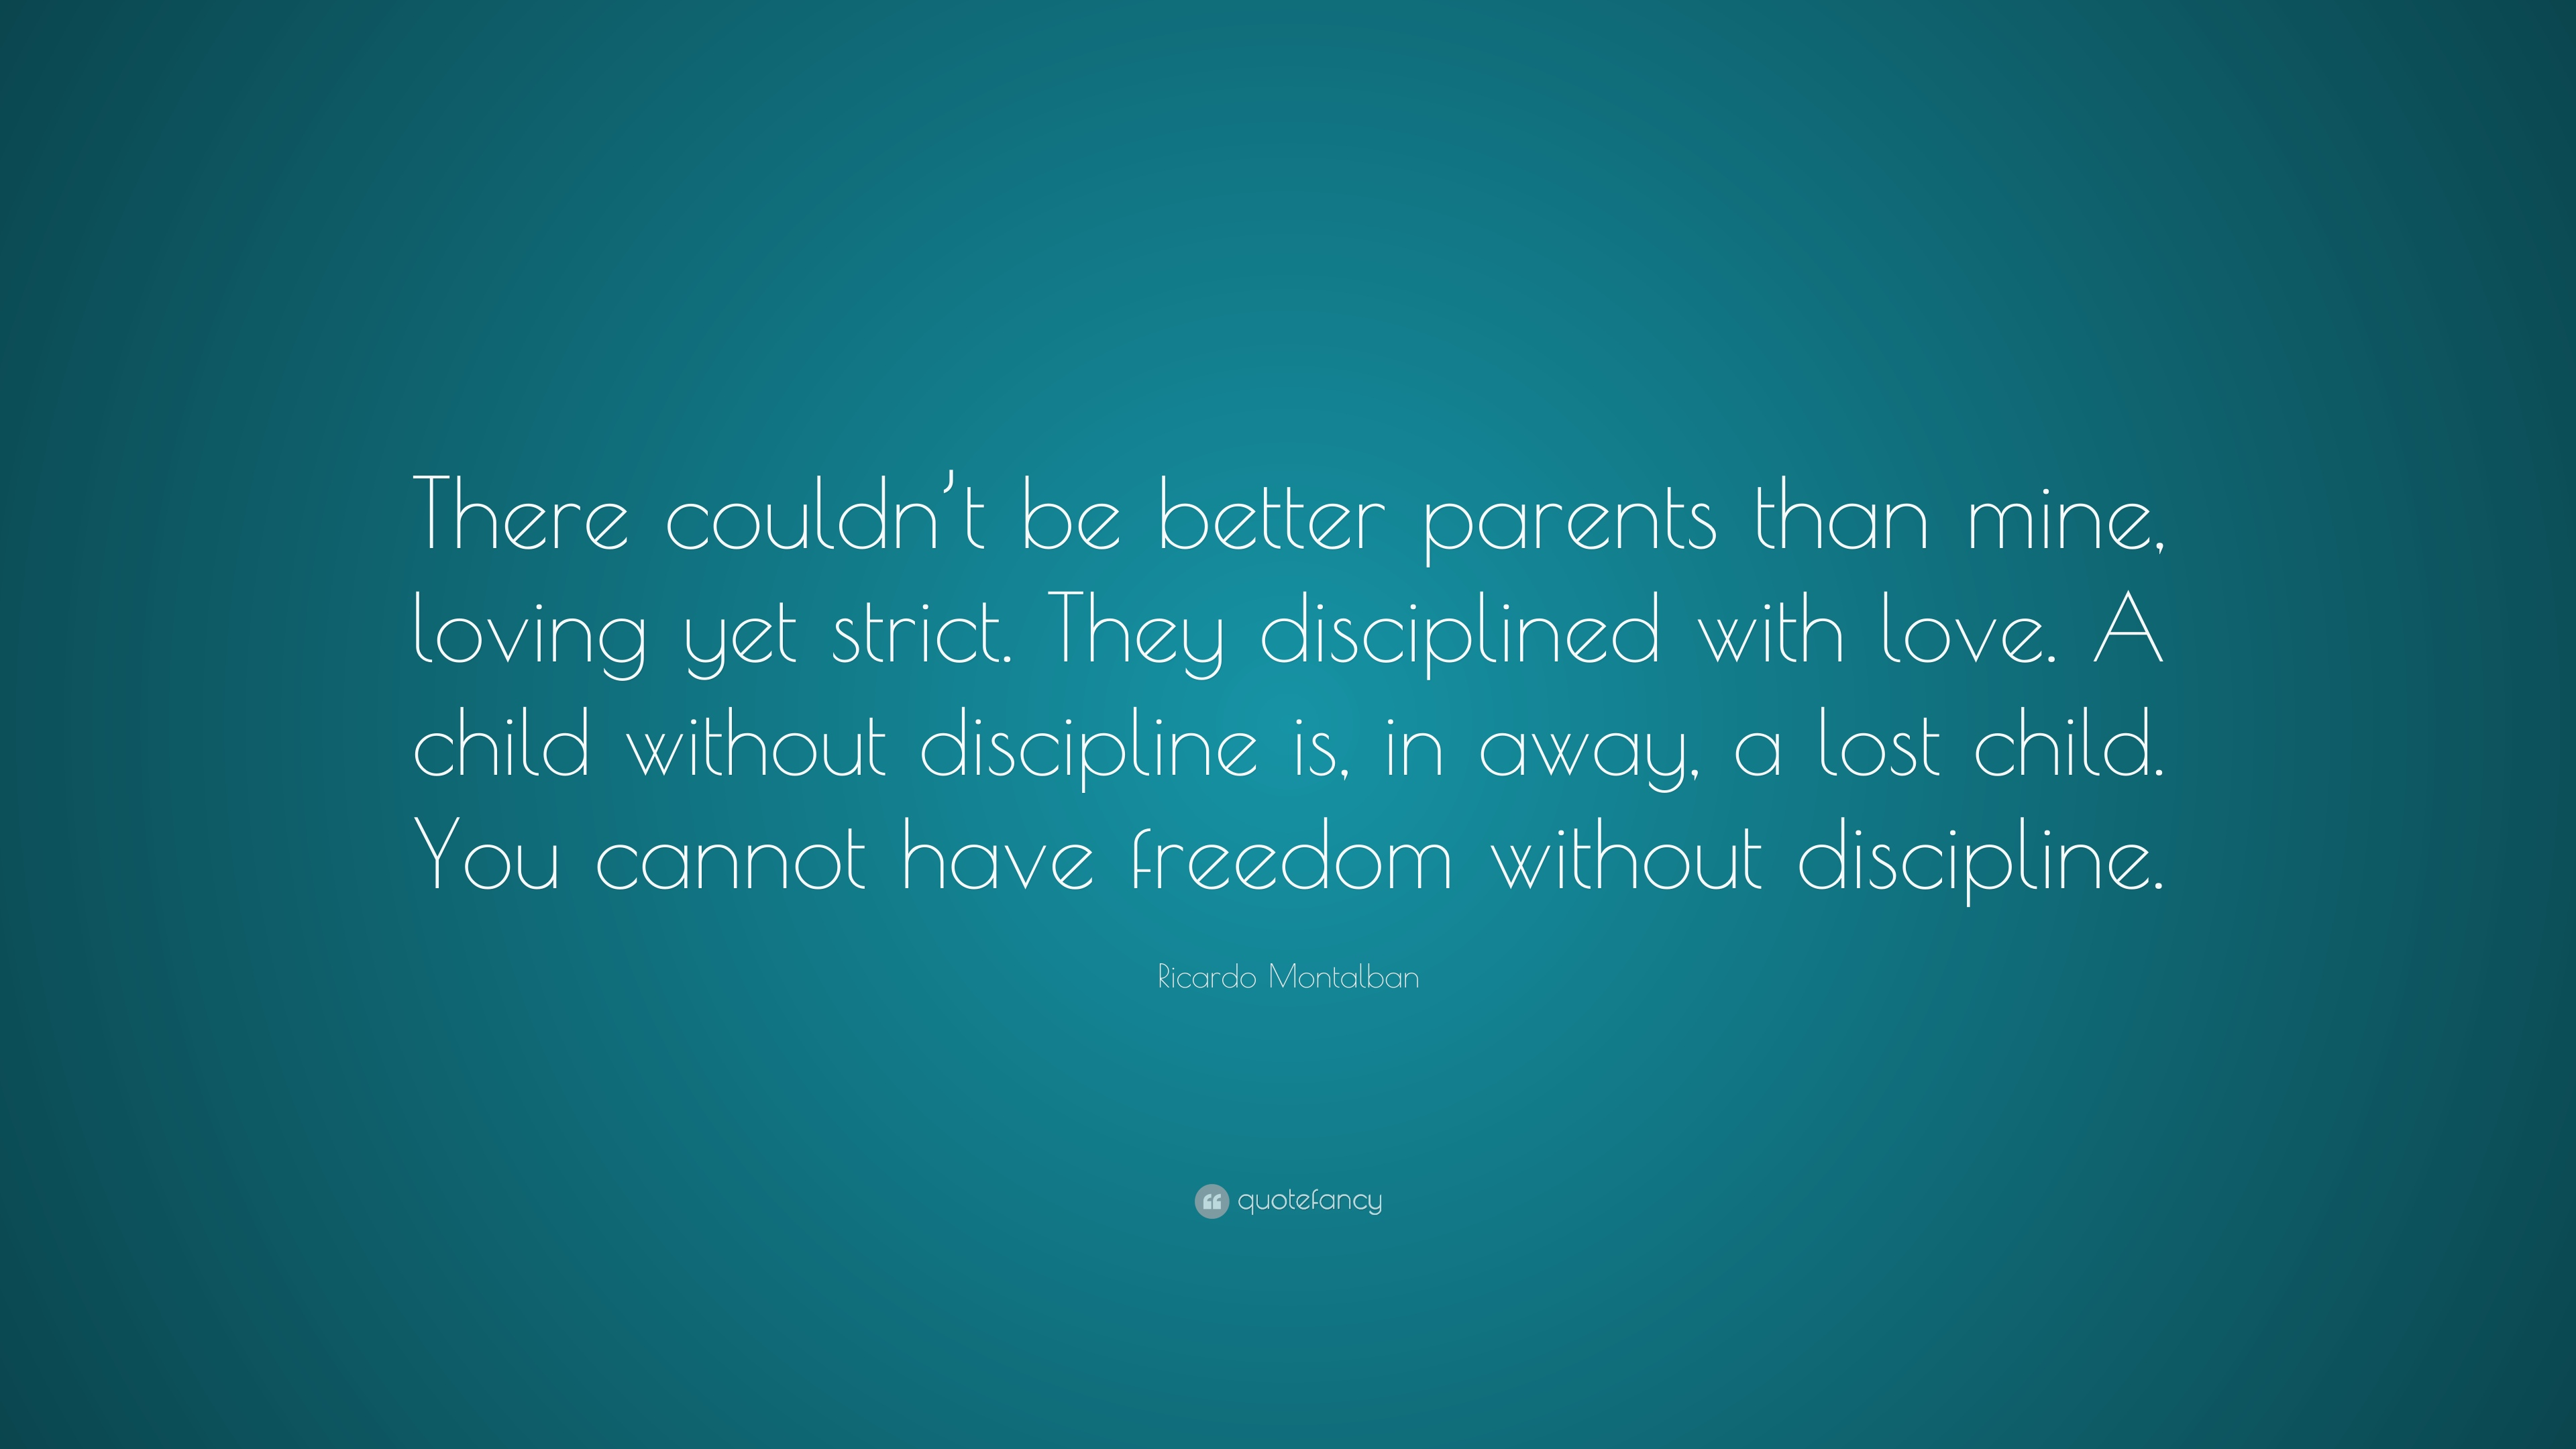 Quotes about parents being strict